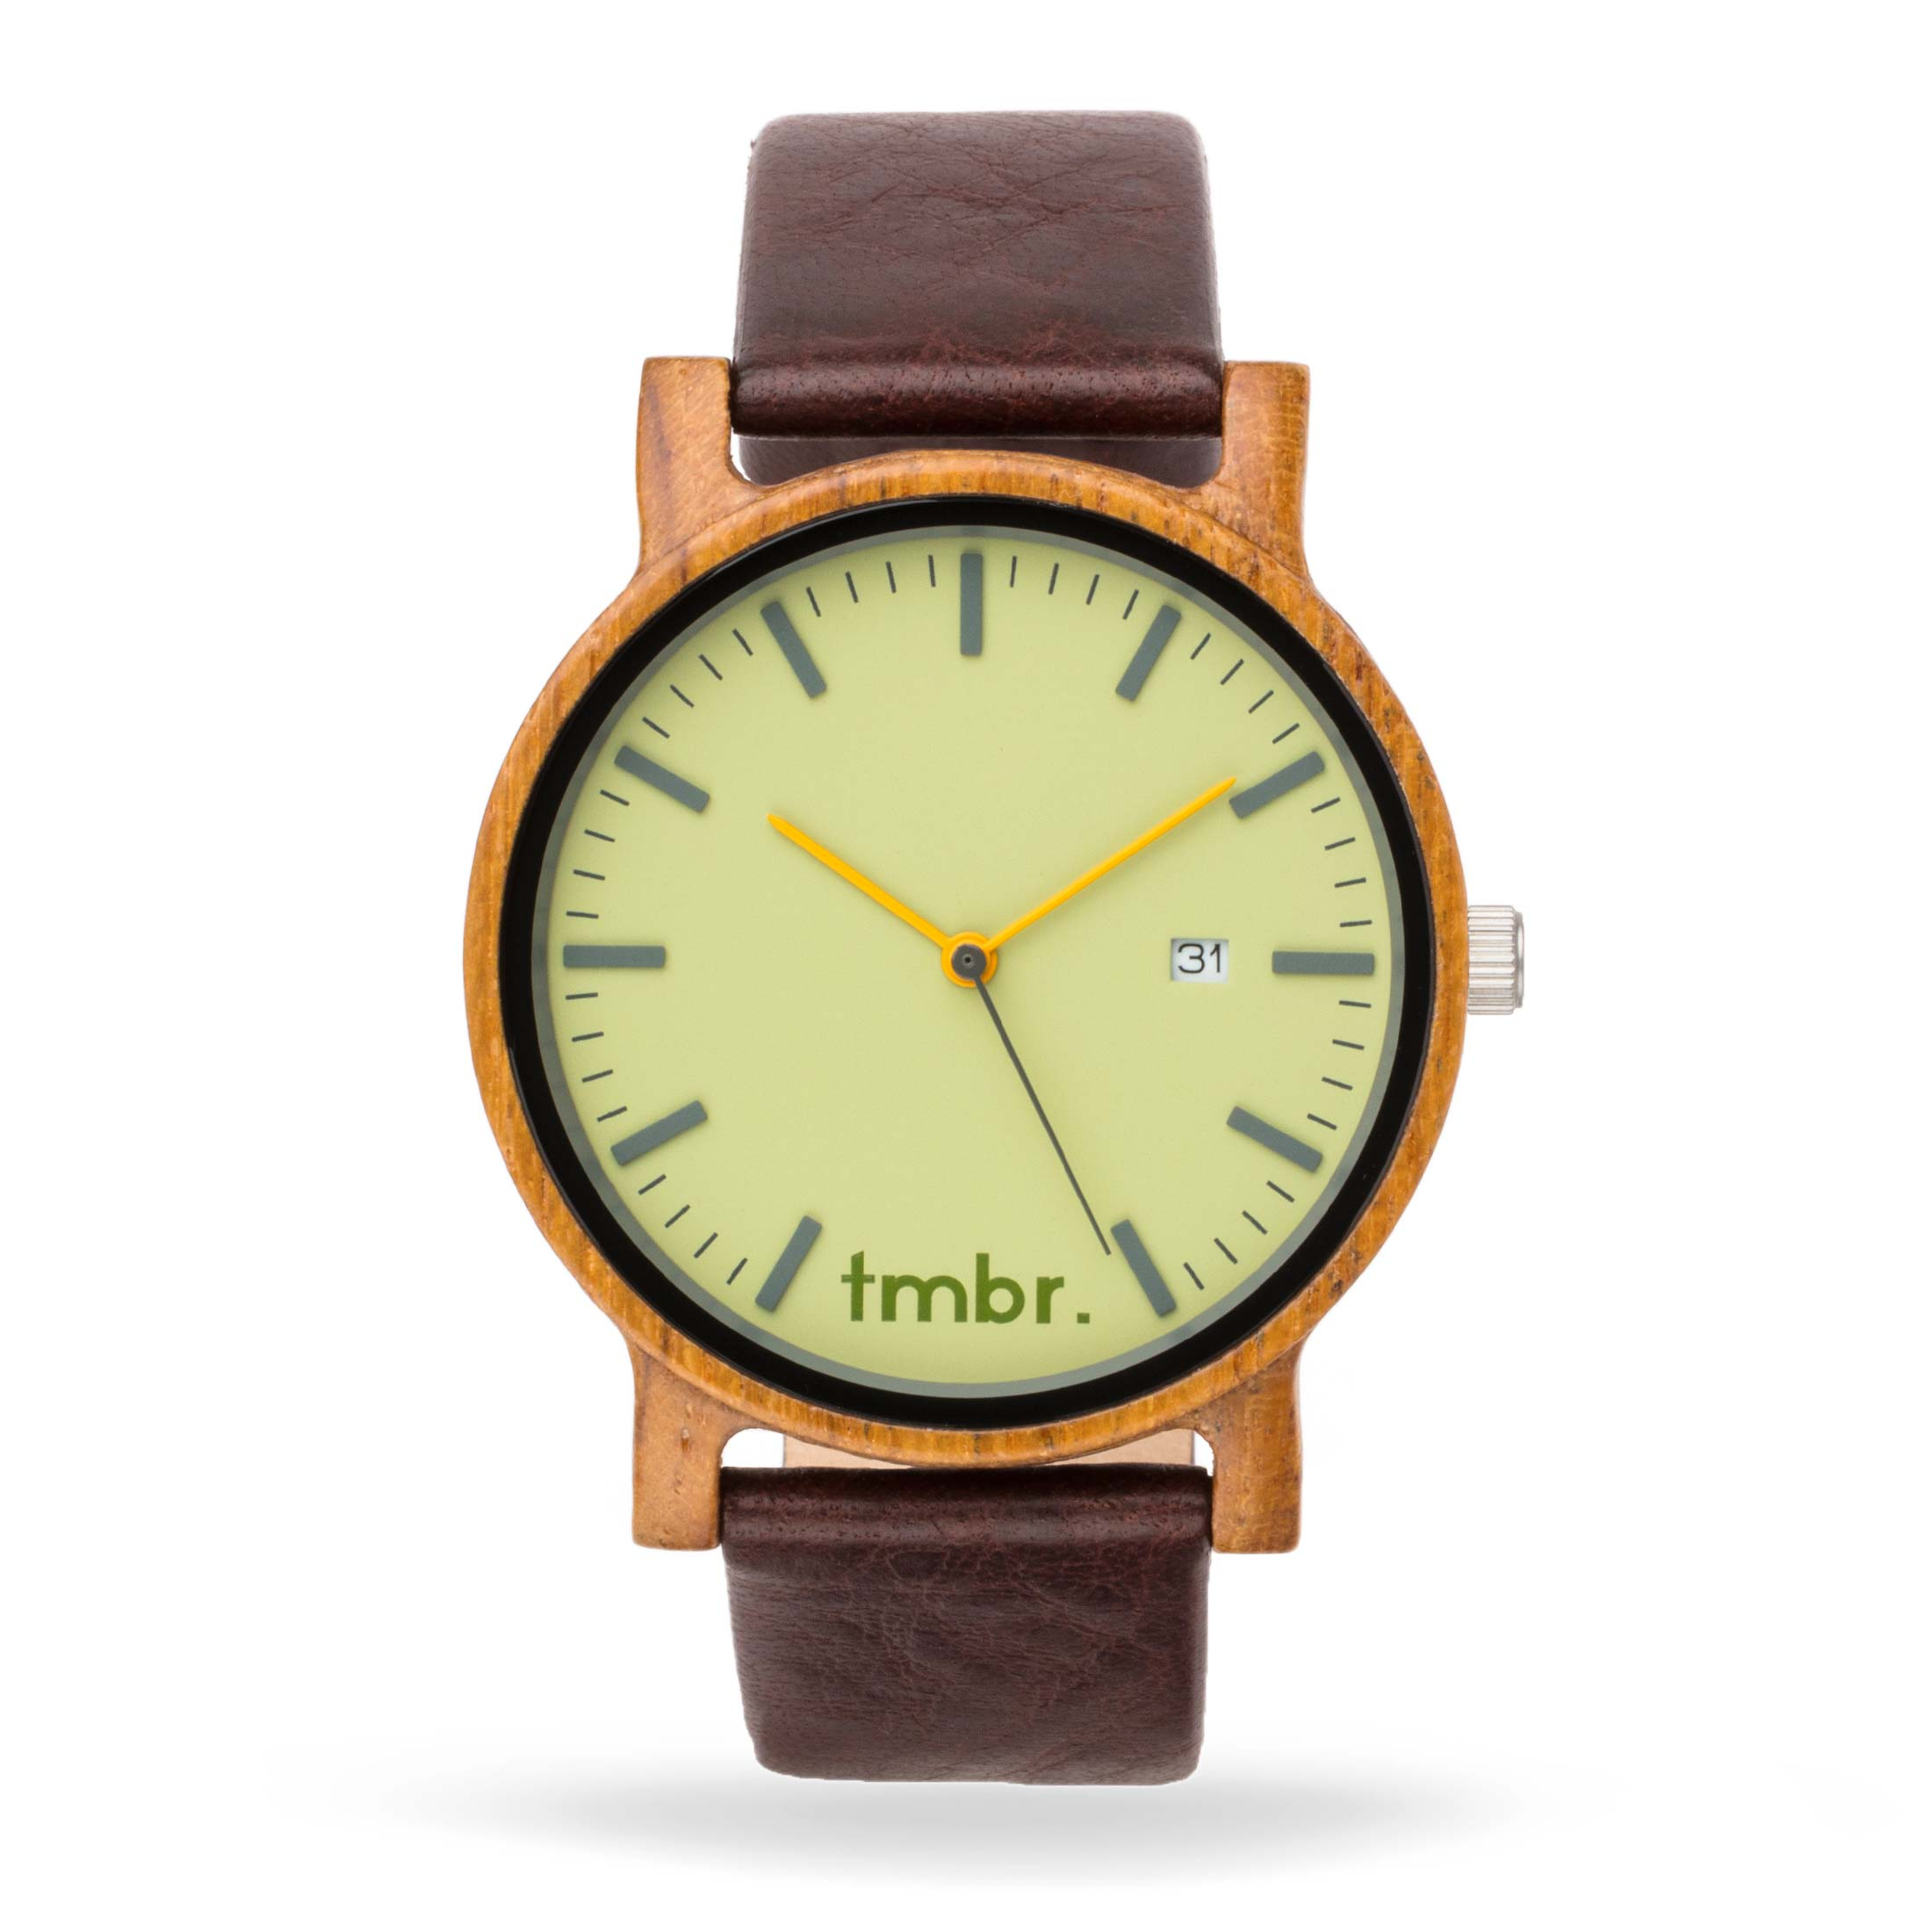 Engraved Tmbr Journeyman Wood Watch - Grove Green